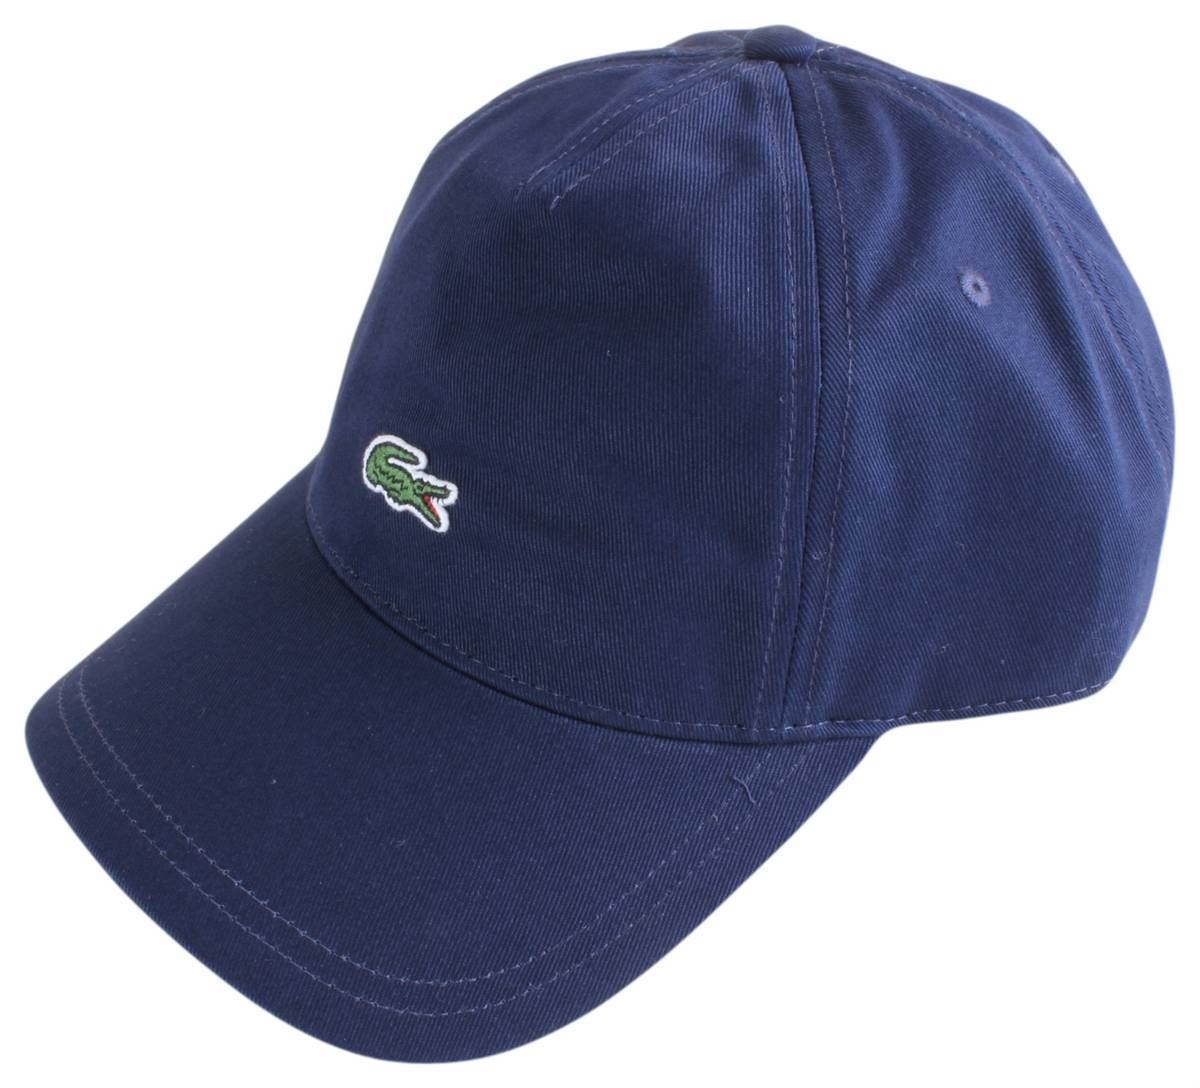 b39ef5b3808 Lacoste Mens Embroidered Crocodile Cap - Navy 3614035421012